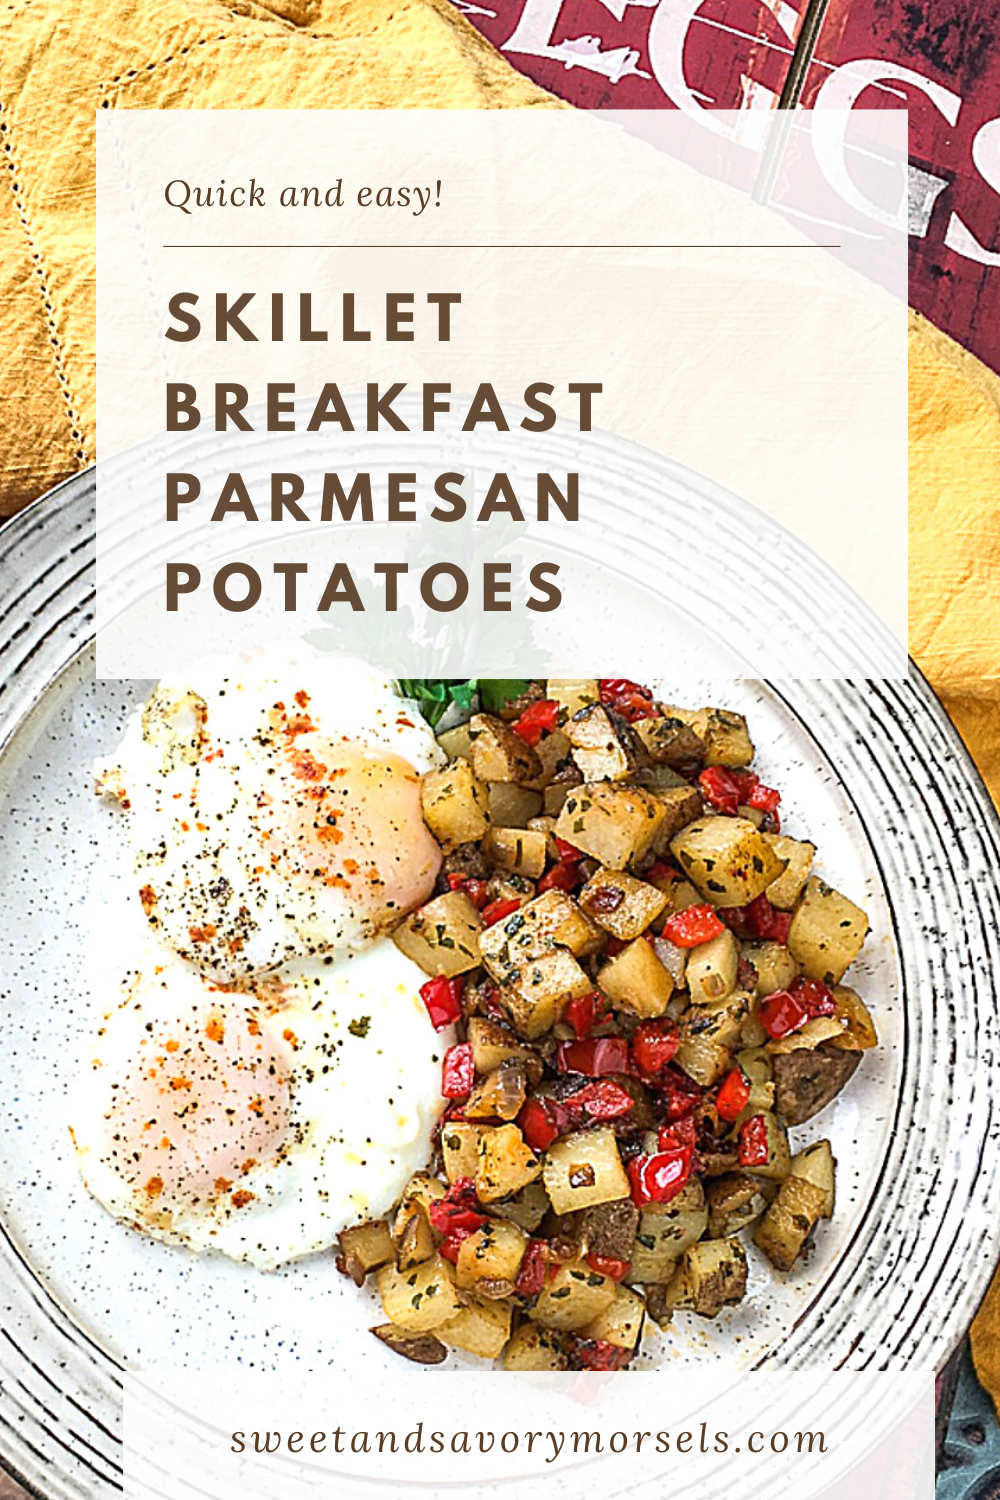 With well-seasoned, deliciously crispy outsides and smooth, creamy centers, these made from scratch Skillet Parmesan Breakfast Potatoes are delicious and easy to make!